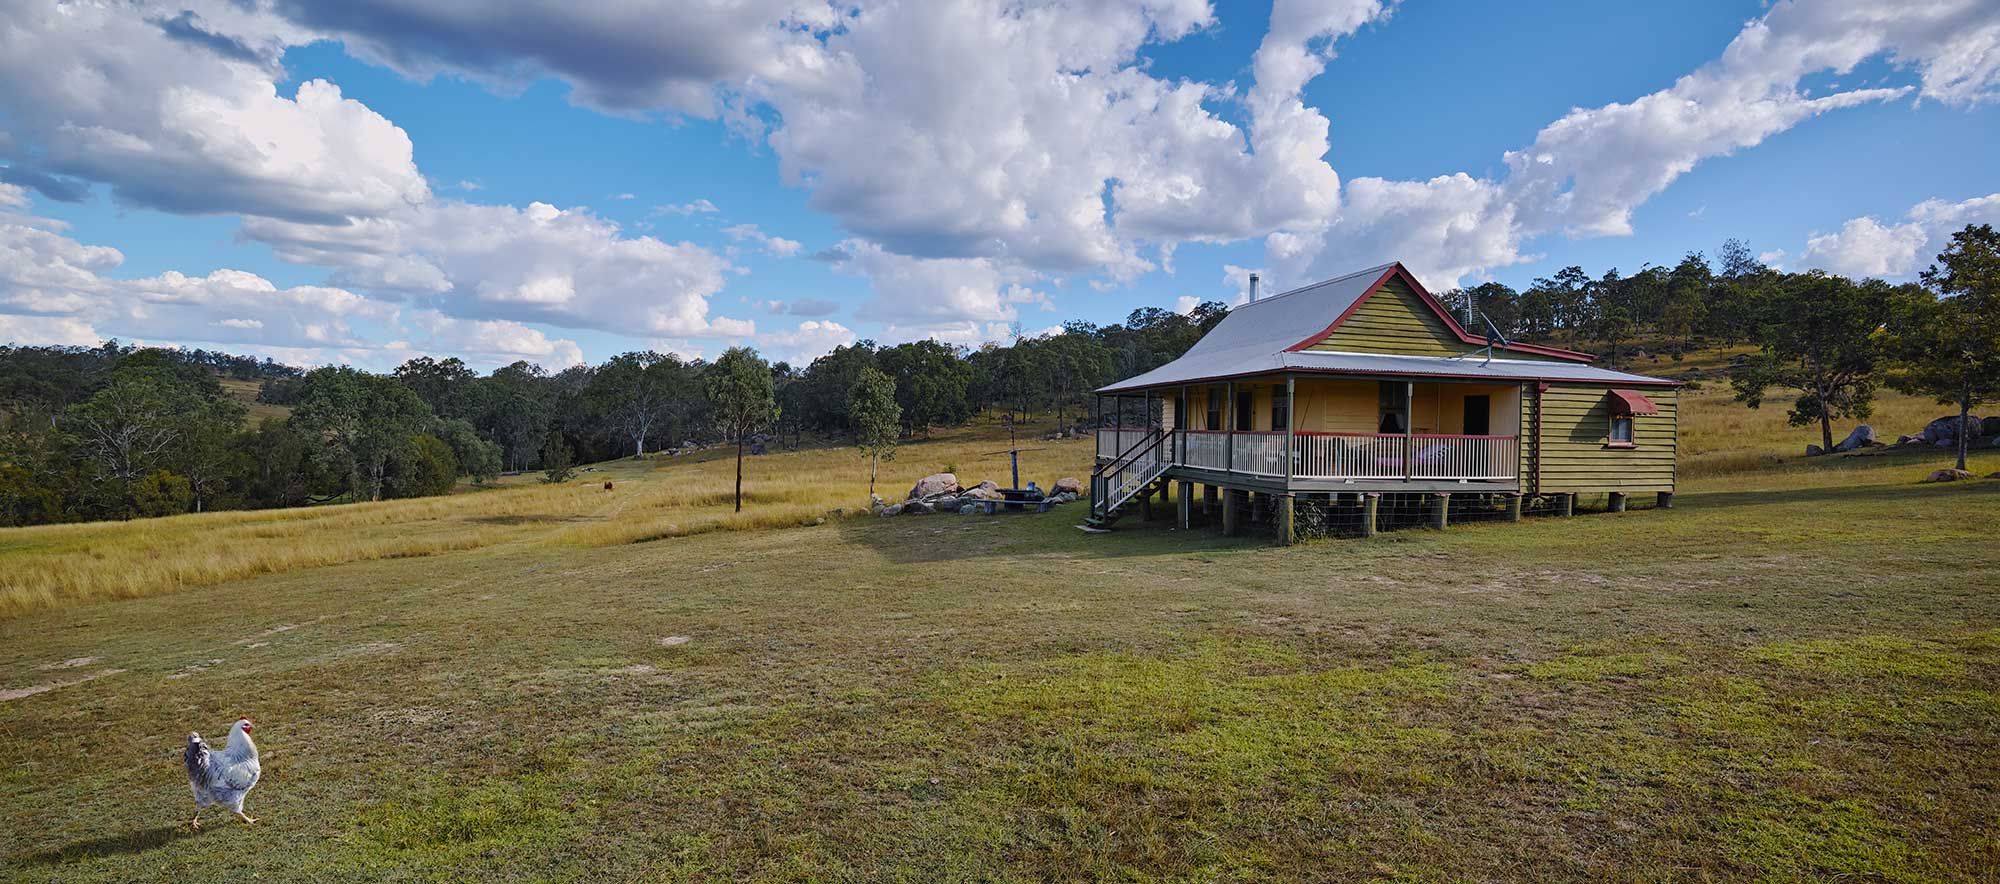 BunyipSprings Farmstay Drone Video and Photography - BunyipSprings Farmstay Cottage